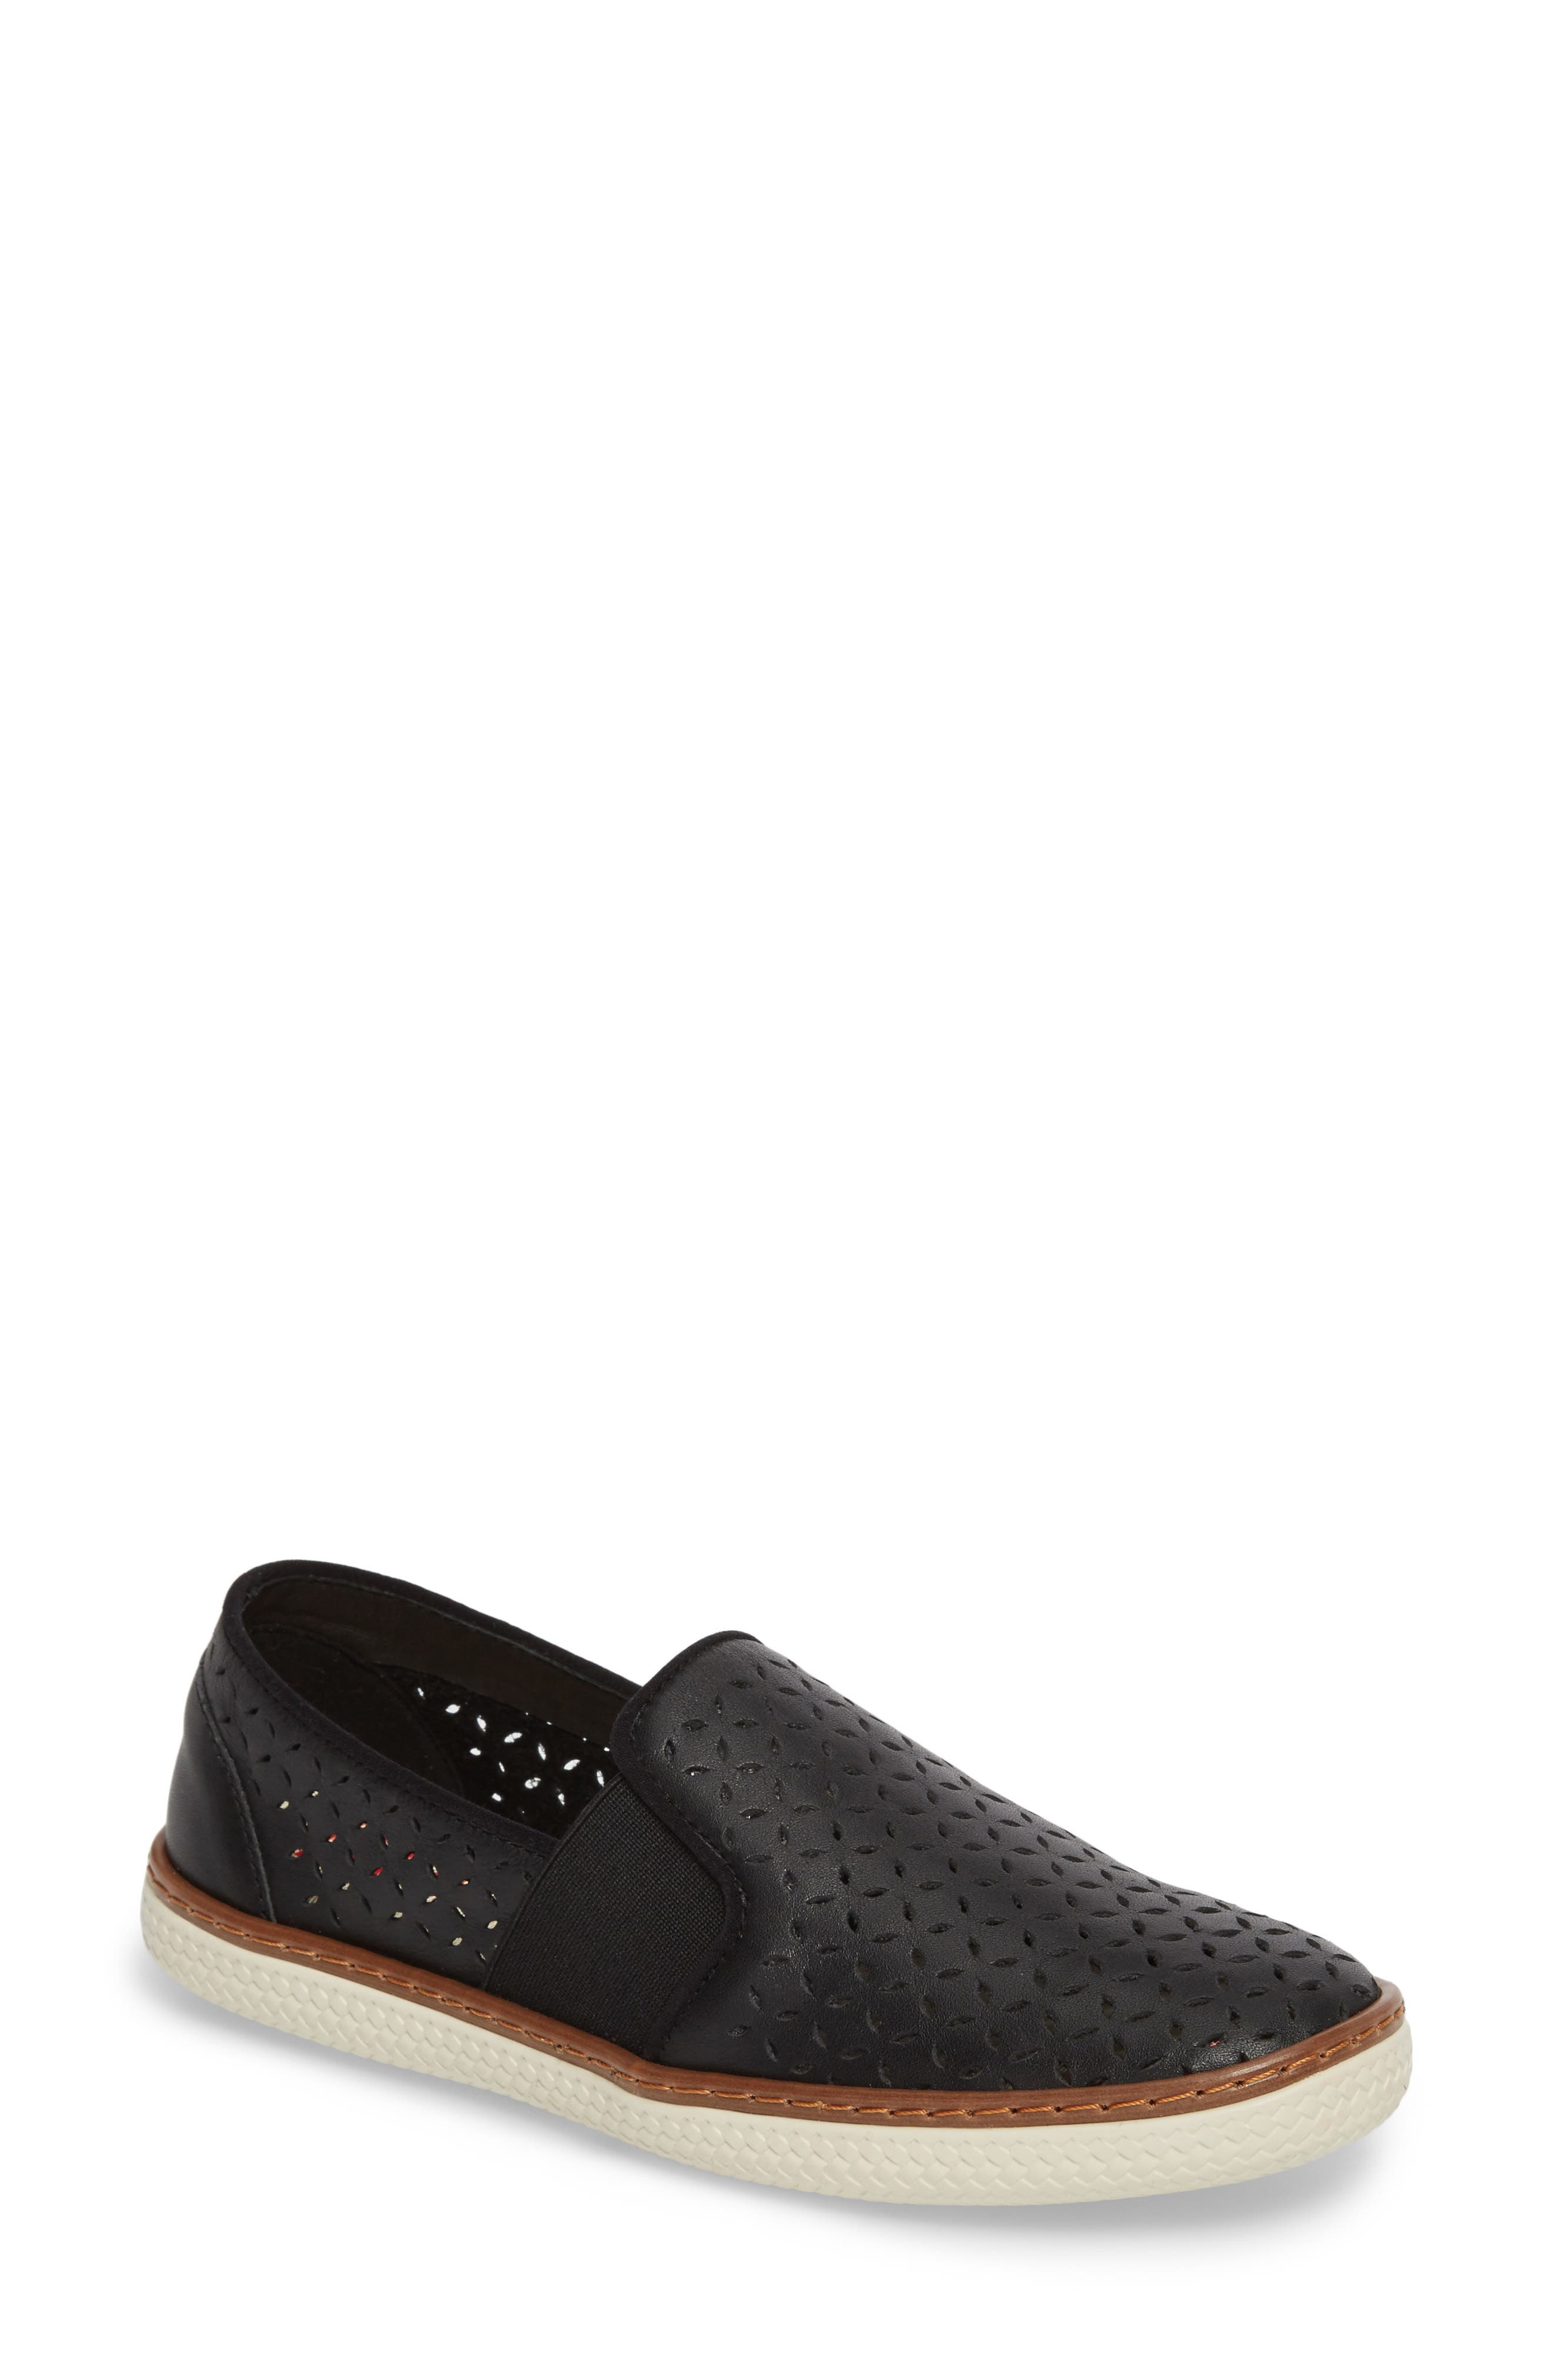 Jasper Perforated Loafer Flat,                             Main thumbnail 1, color,                             001